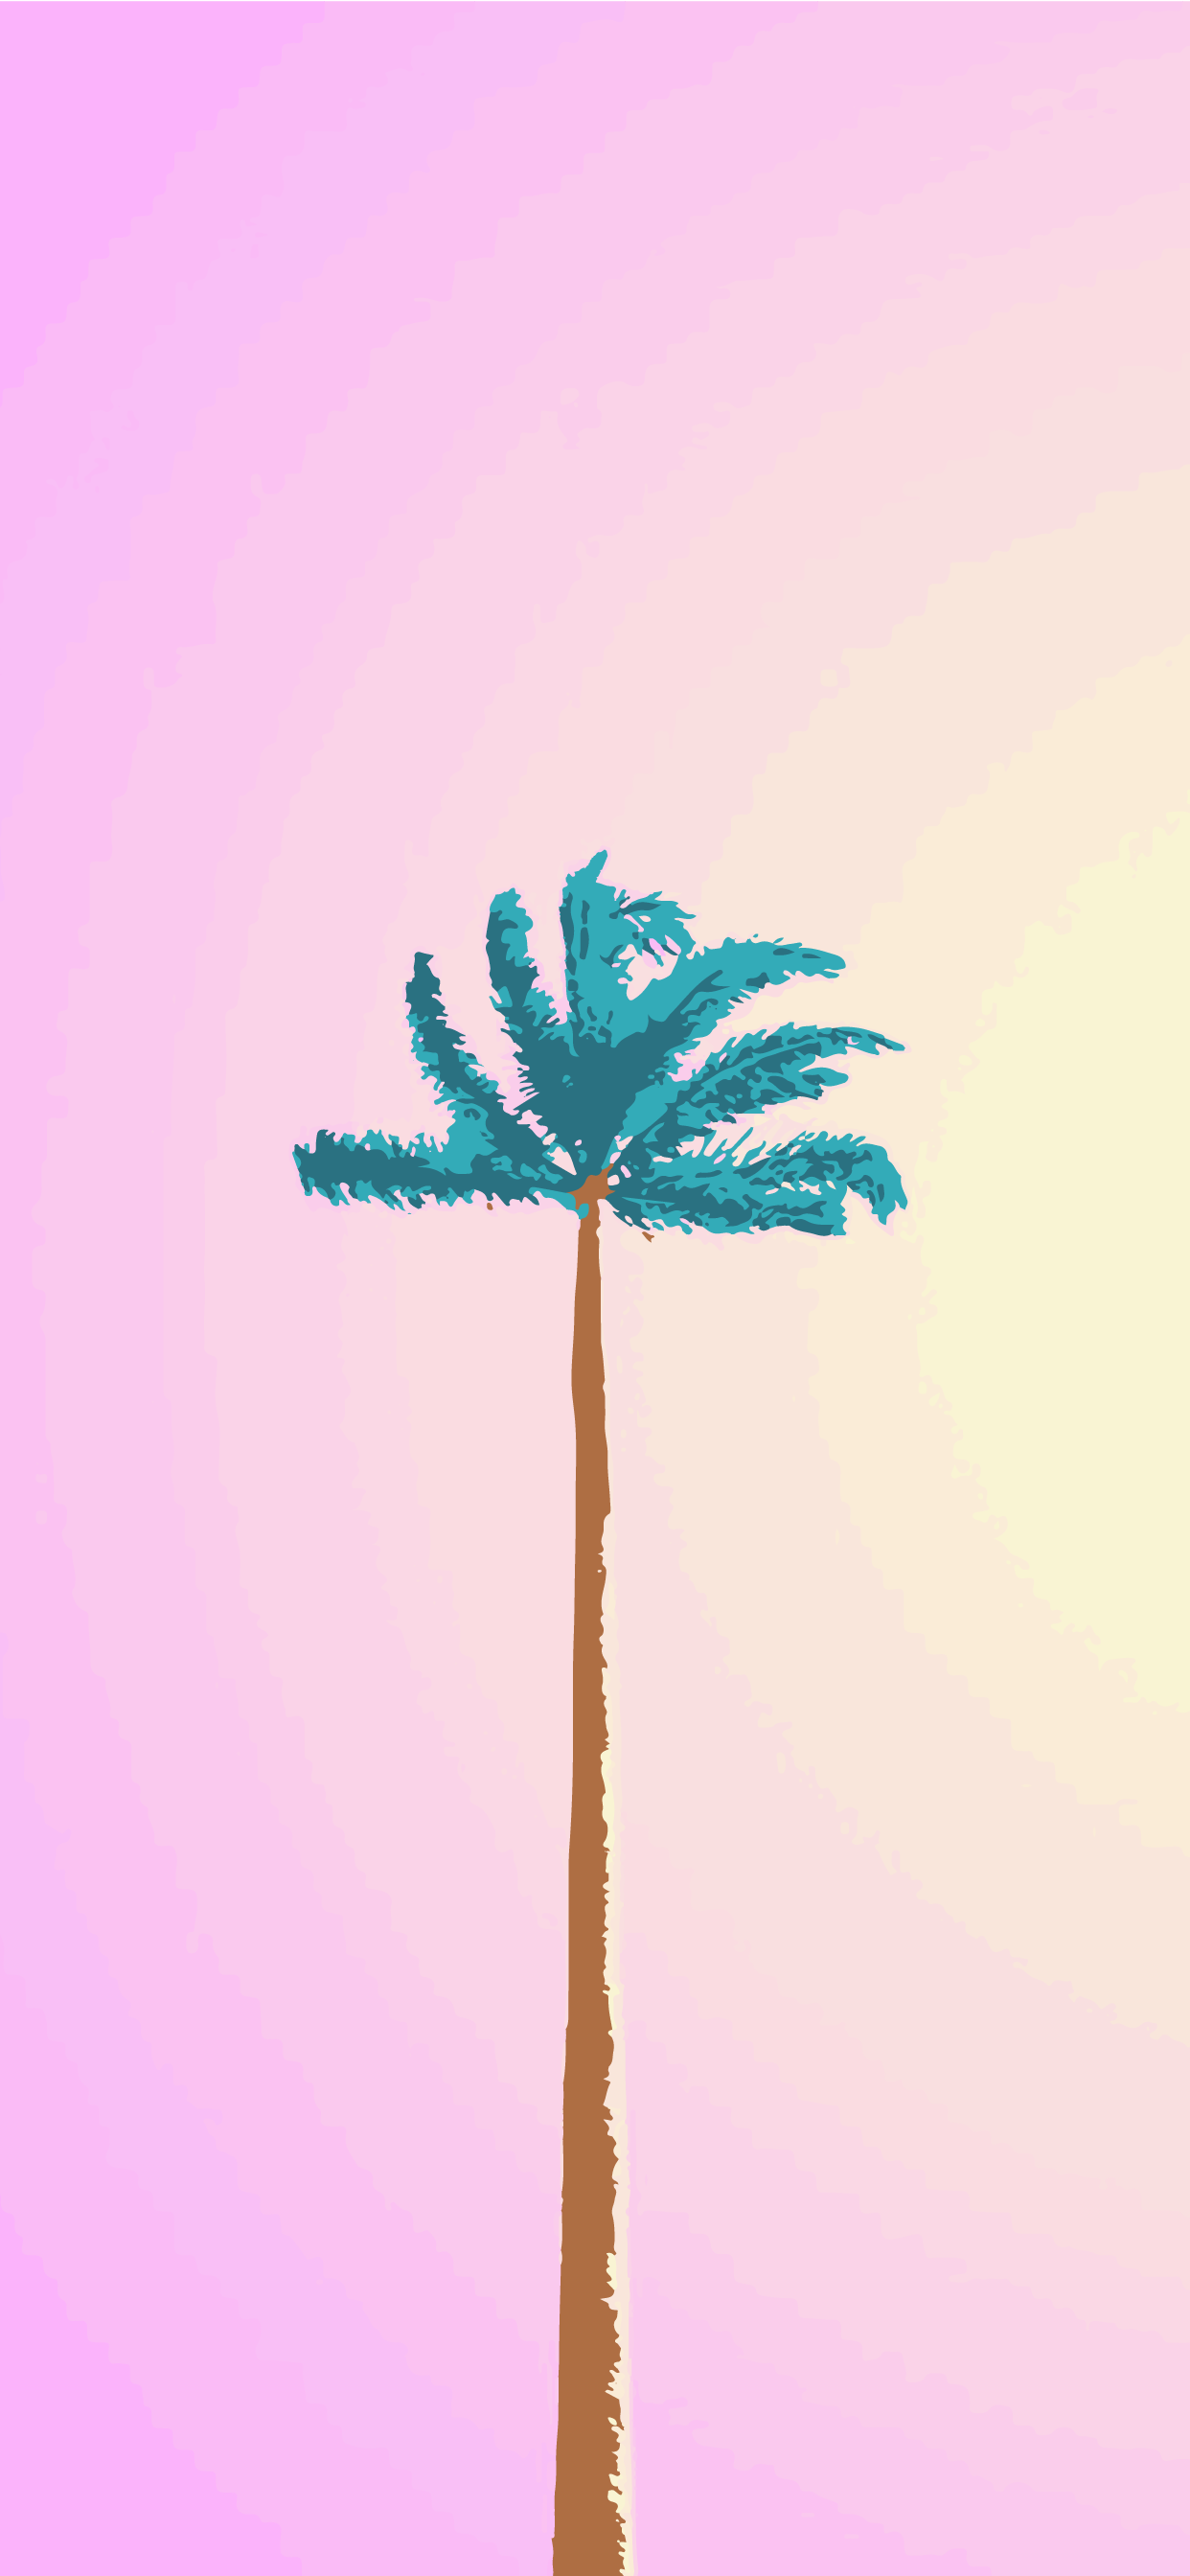 PALMS AESTHETIC WALLPAPER BACKGROUND FOR MOBILE PHONE